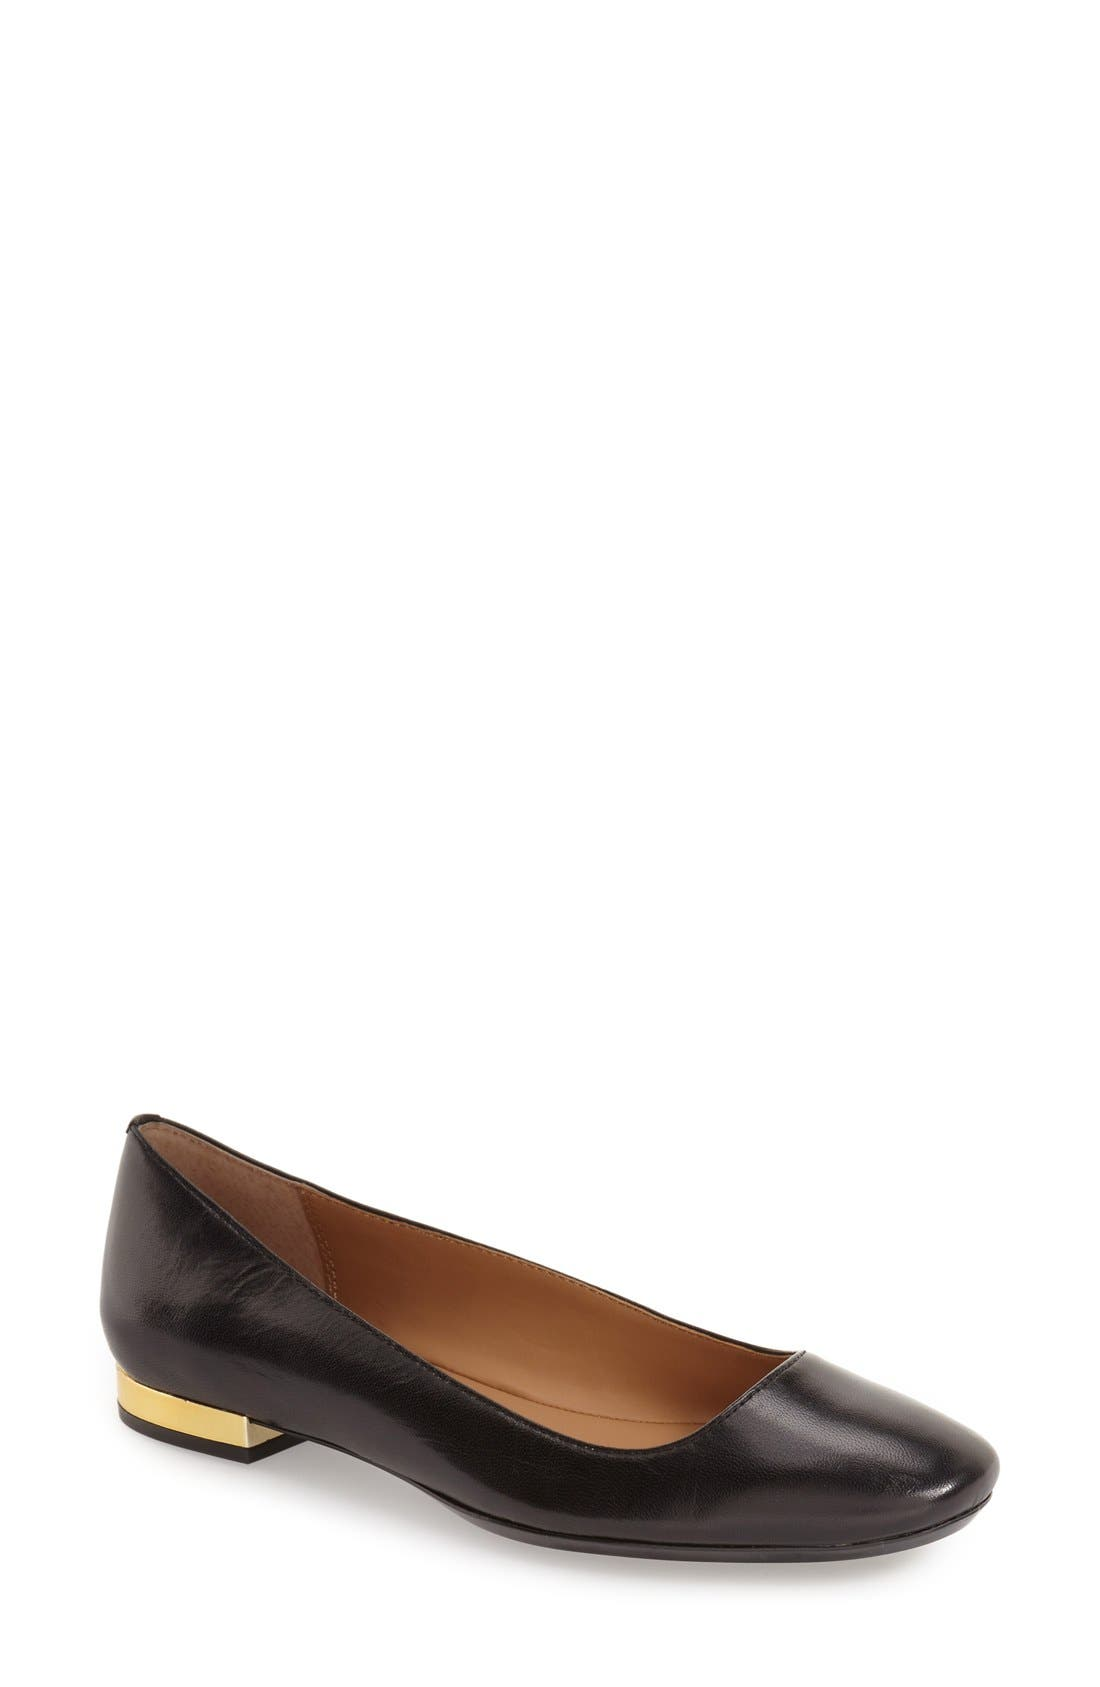 Alternate Image 1 Selected - Calvin Klein 'Felice' Flat (Women)